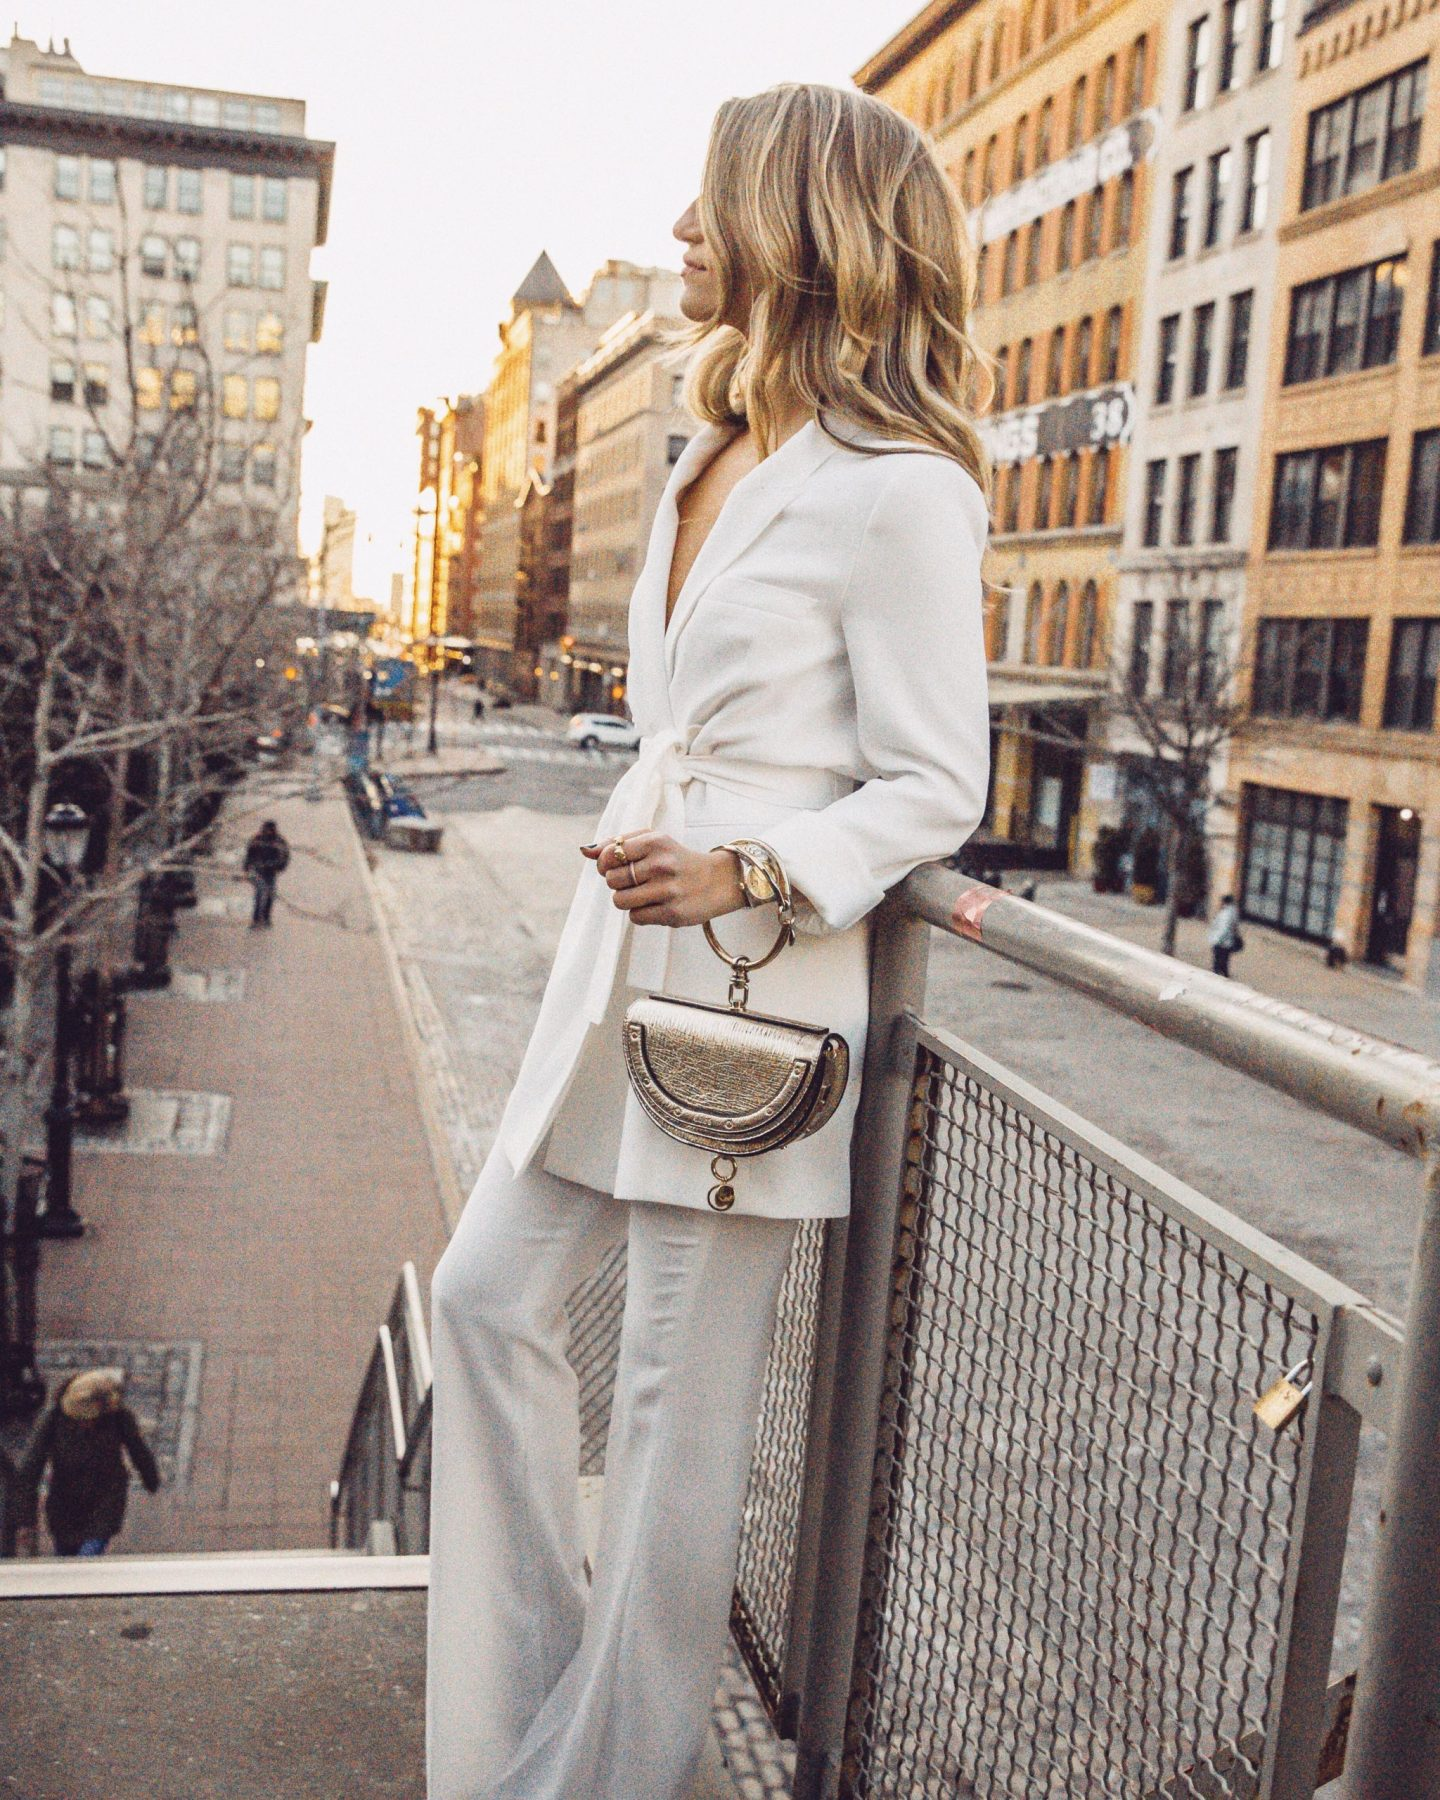 Cassandra DiMicco, Cass DiMicco, Dressed For Dreams, NYC, New York City, New York, Street Style NYC, Street Style 2018, NYC Street Style Street Style Outfits, 2018 Trends, NYC Fashion Blogger, metallic Chloe bag, Chloe bag, Chloe bracelet bag, chic all white outfit, business chic outfit